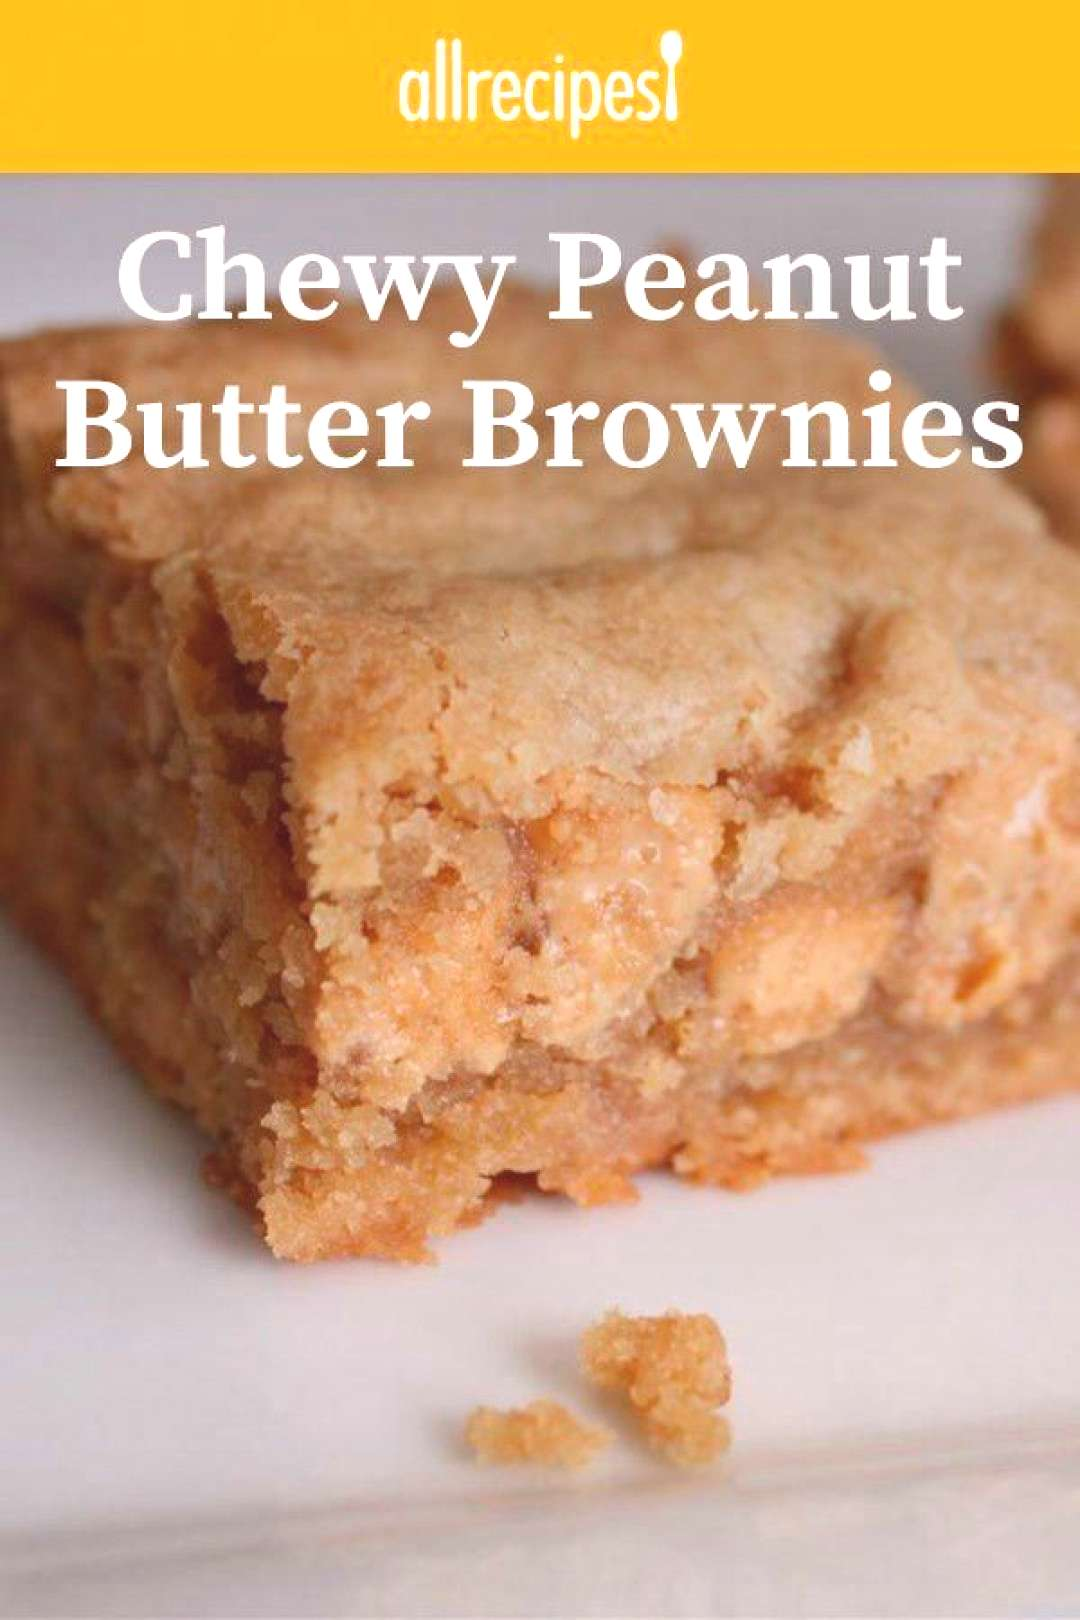 Chewy Peanut Butter Brownies |